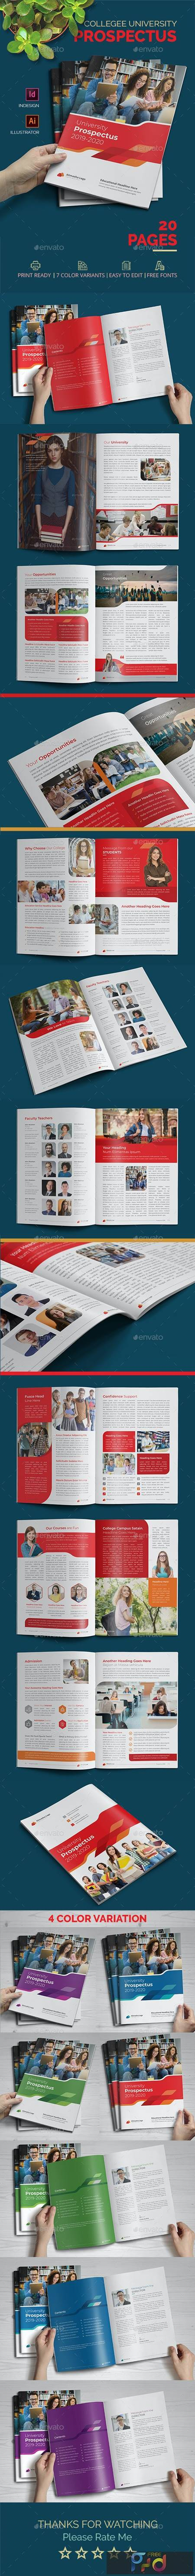 College University Prospectus Magazine 27504020 1